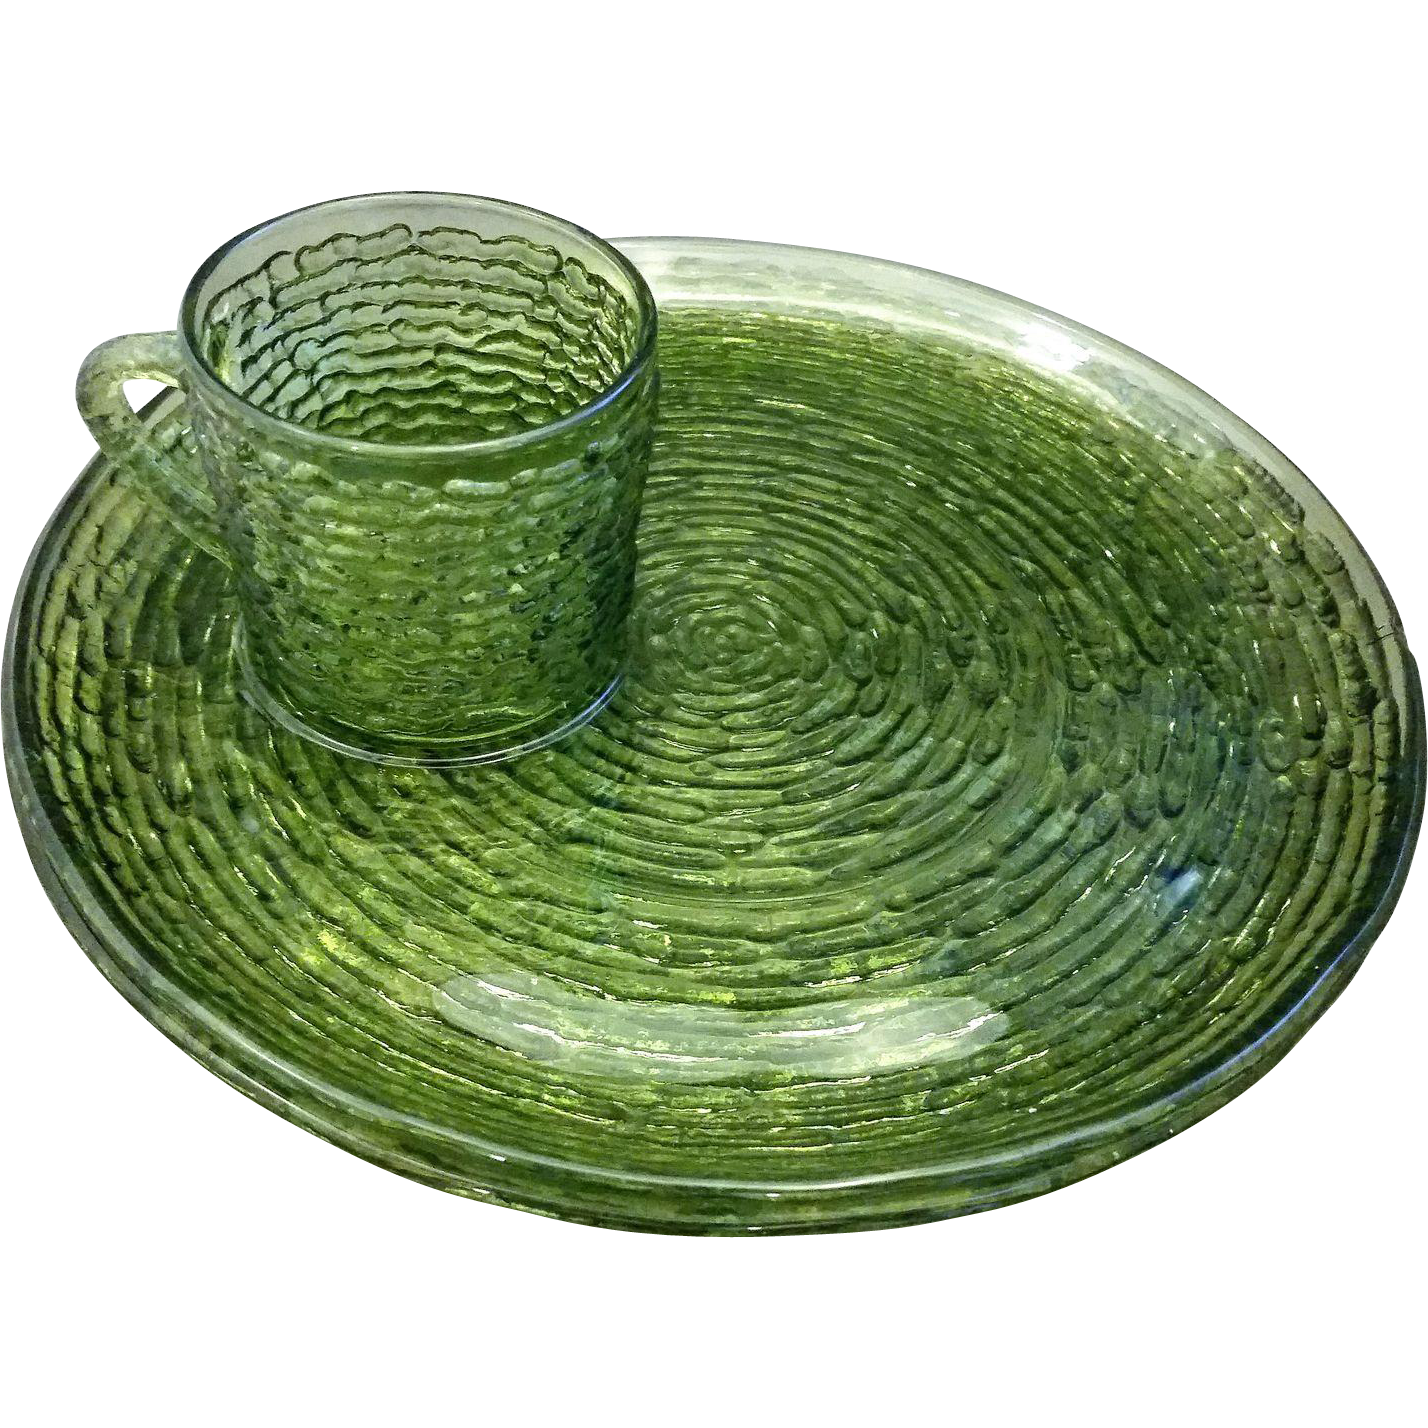 Anchor Hocking Soreno Avocado Green Snack Sets 4 Pc